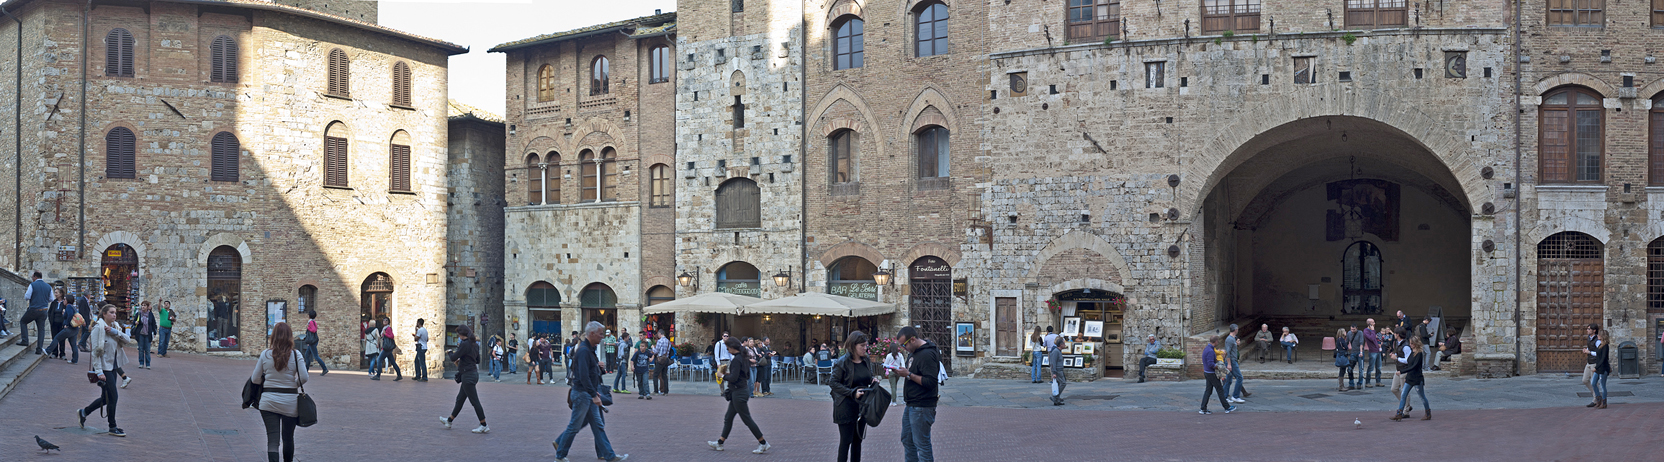 Piazza Duomo- San Gimignano, click on image for larger view.